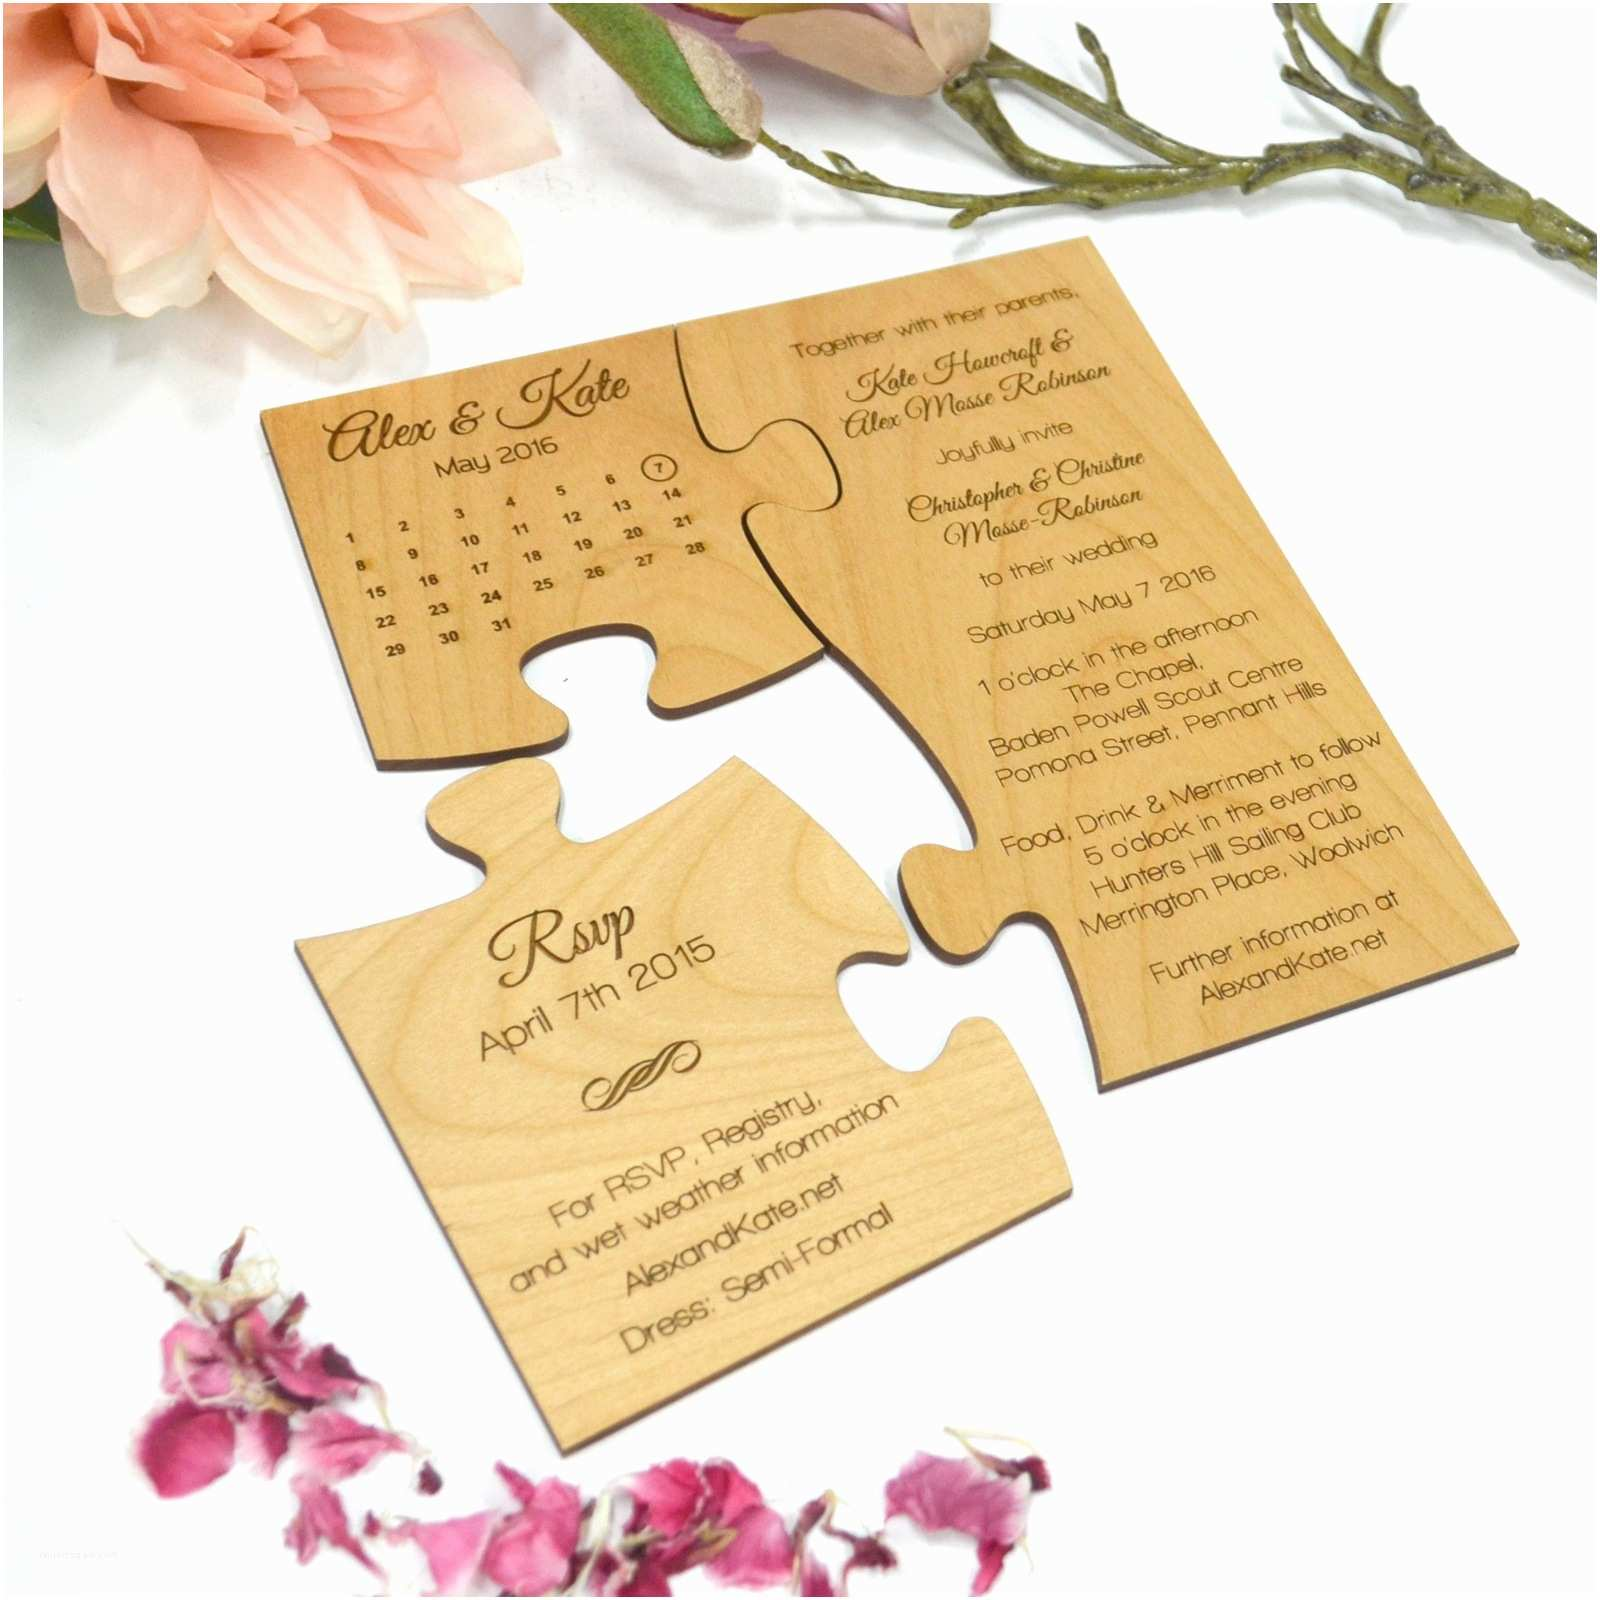 Puzzle Wedding Invitations Engraved Wooden Puzzle Wedding Invitation with Save the